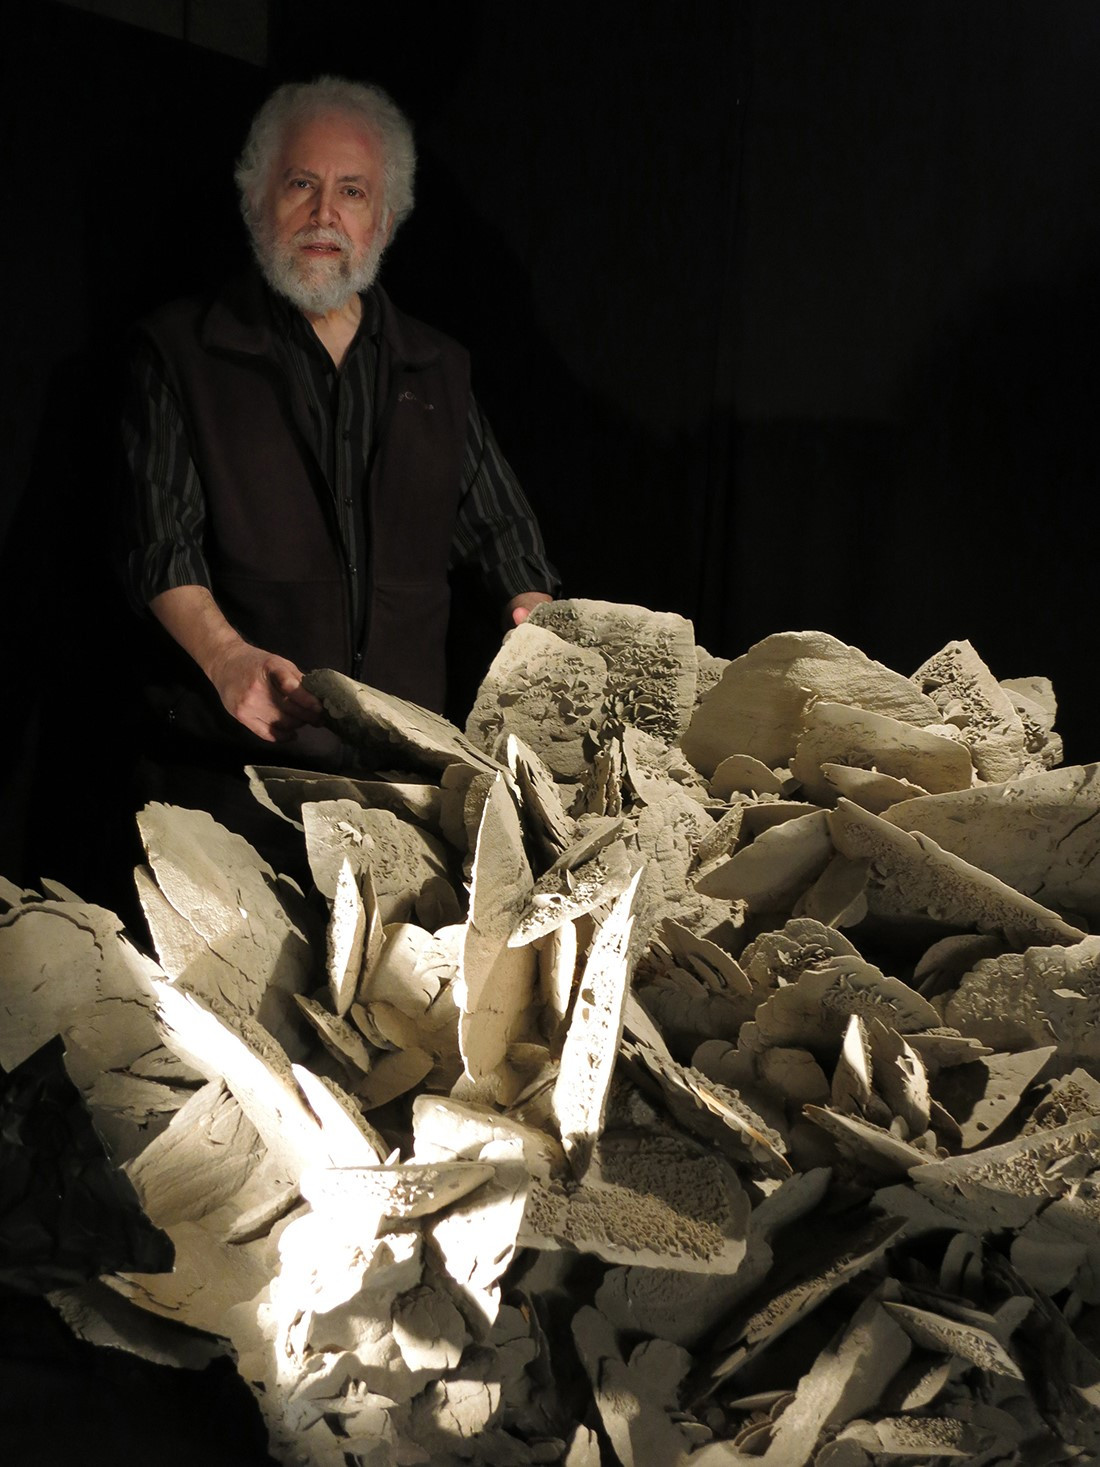 Richard Berger with the selenite rose from his Masterpieces of the Earth Collection. It is one of the massive crystals that will anchor the David Friend Hall. (Photo: Casper Beesley)